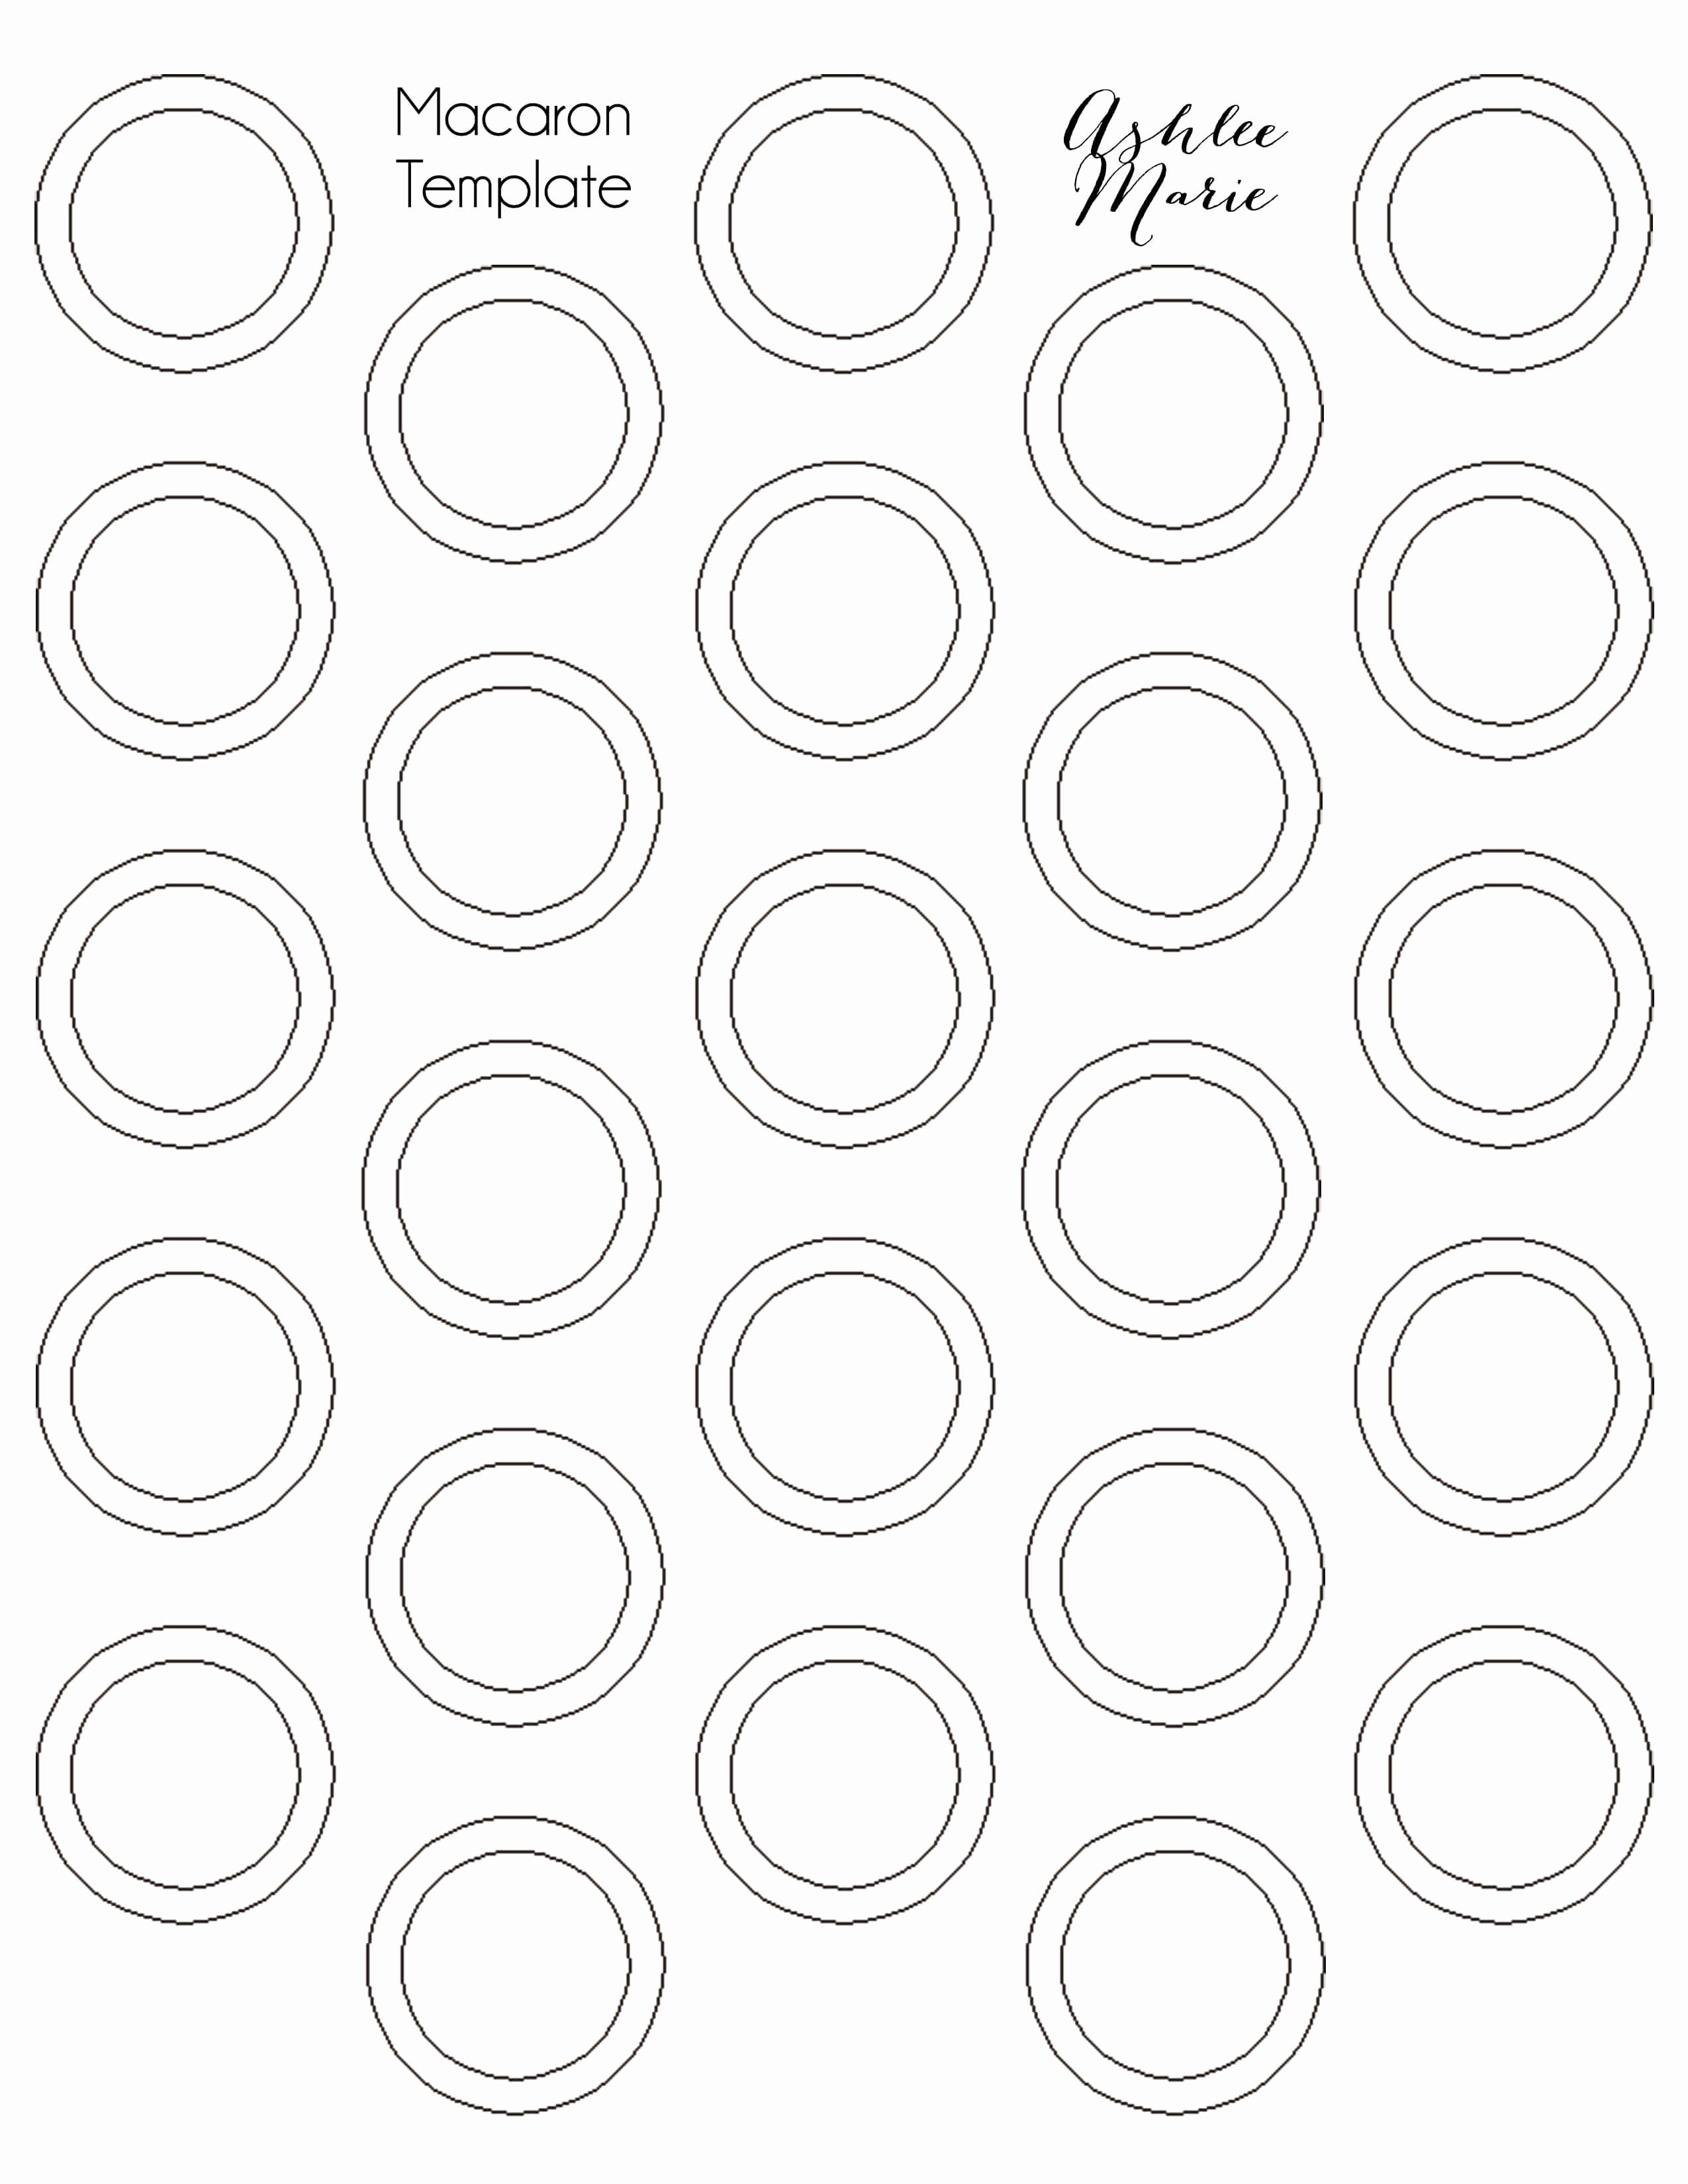 1 Inch Circle Template Beautiful Chocolate Mint Macarons In 2020 Macaron Template Macaron Recipe Macaroon Cookies